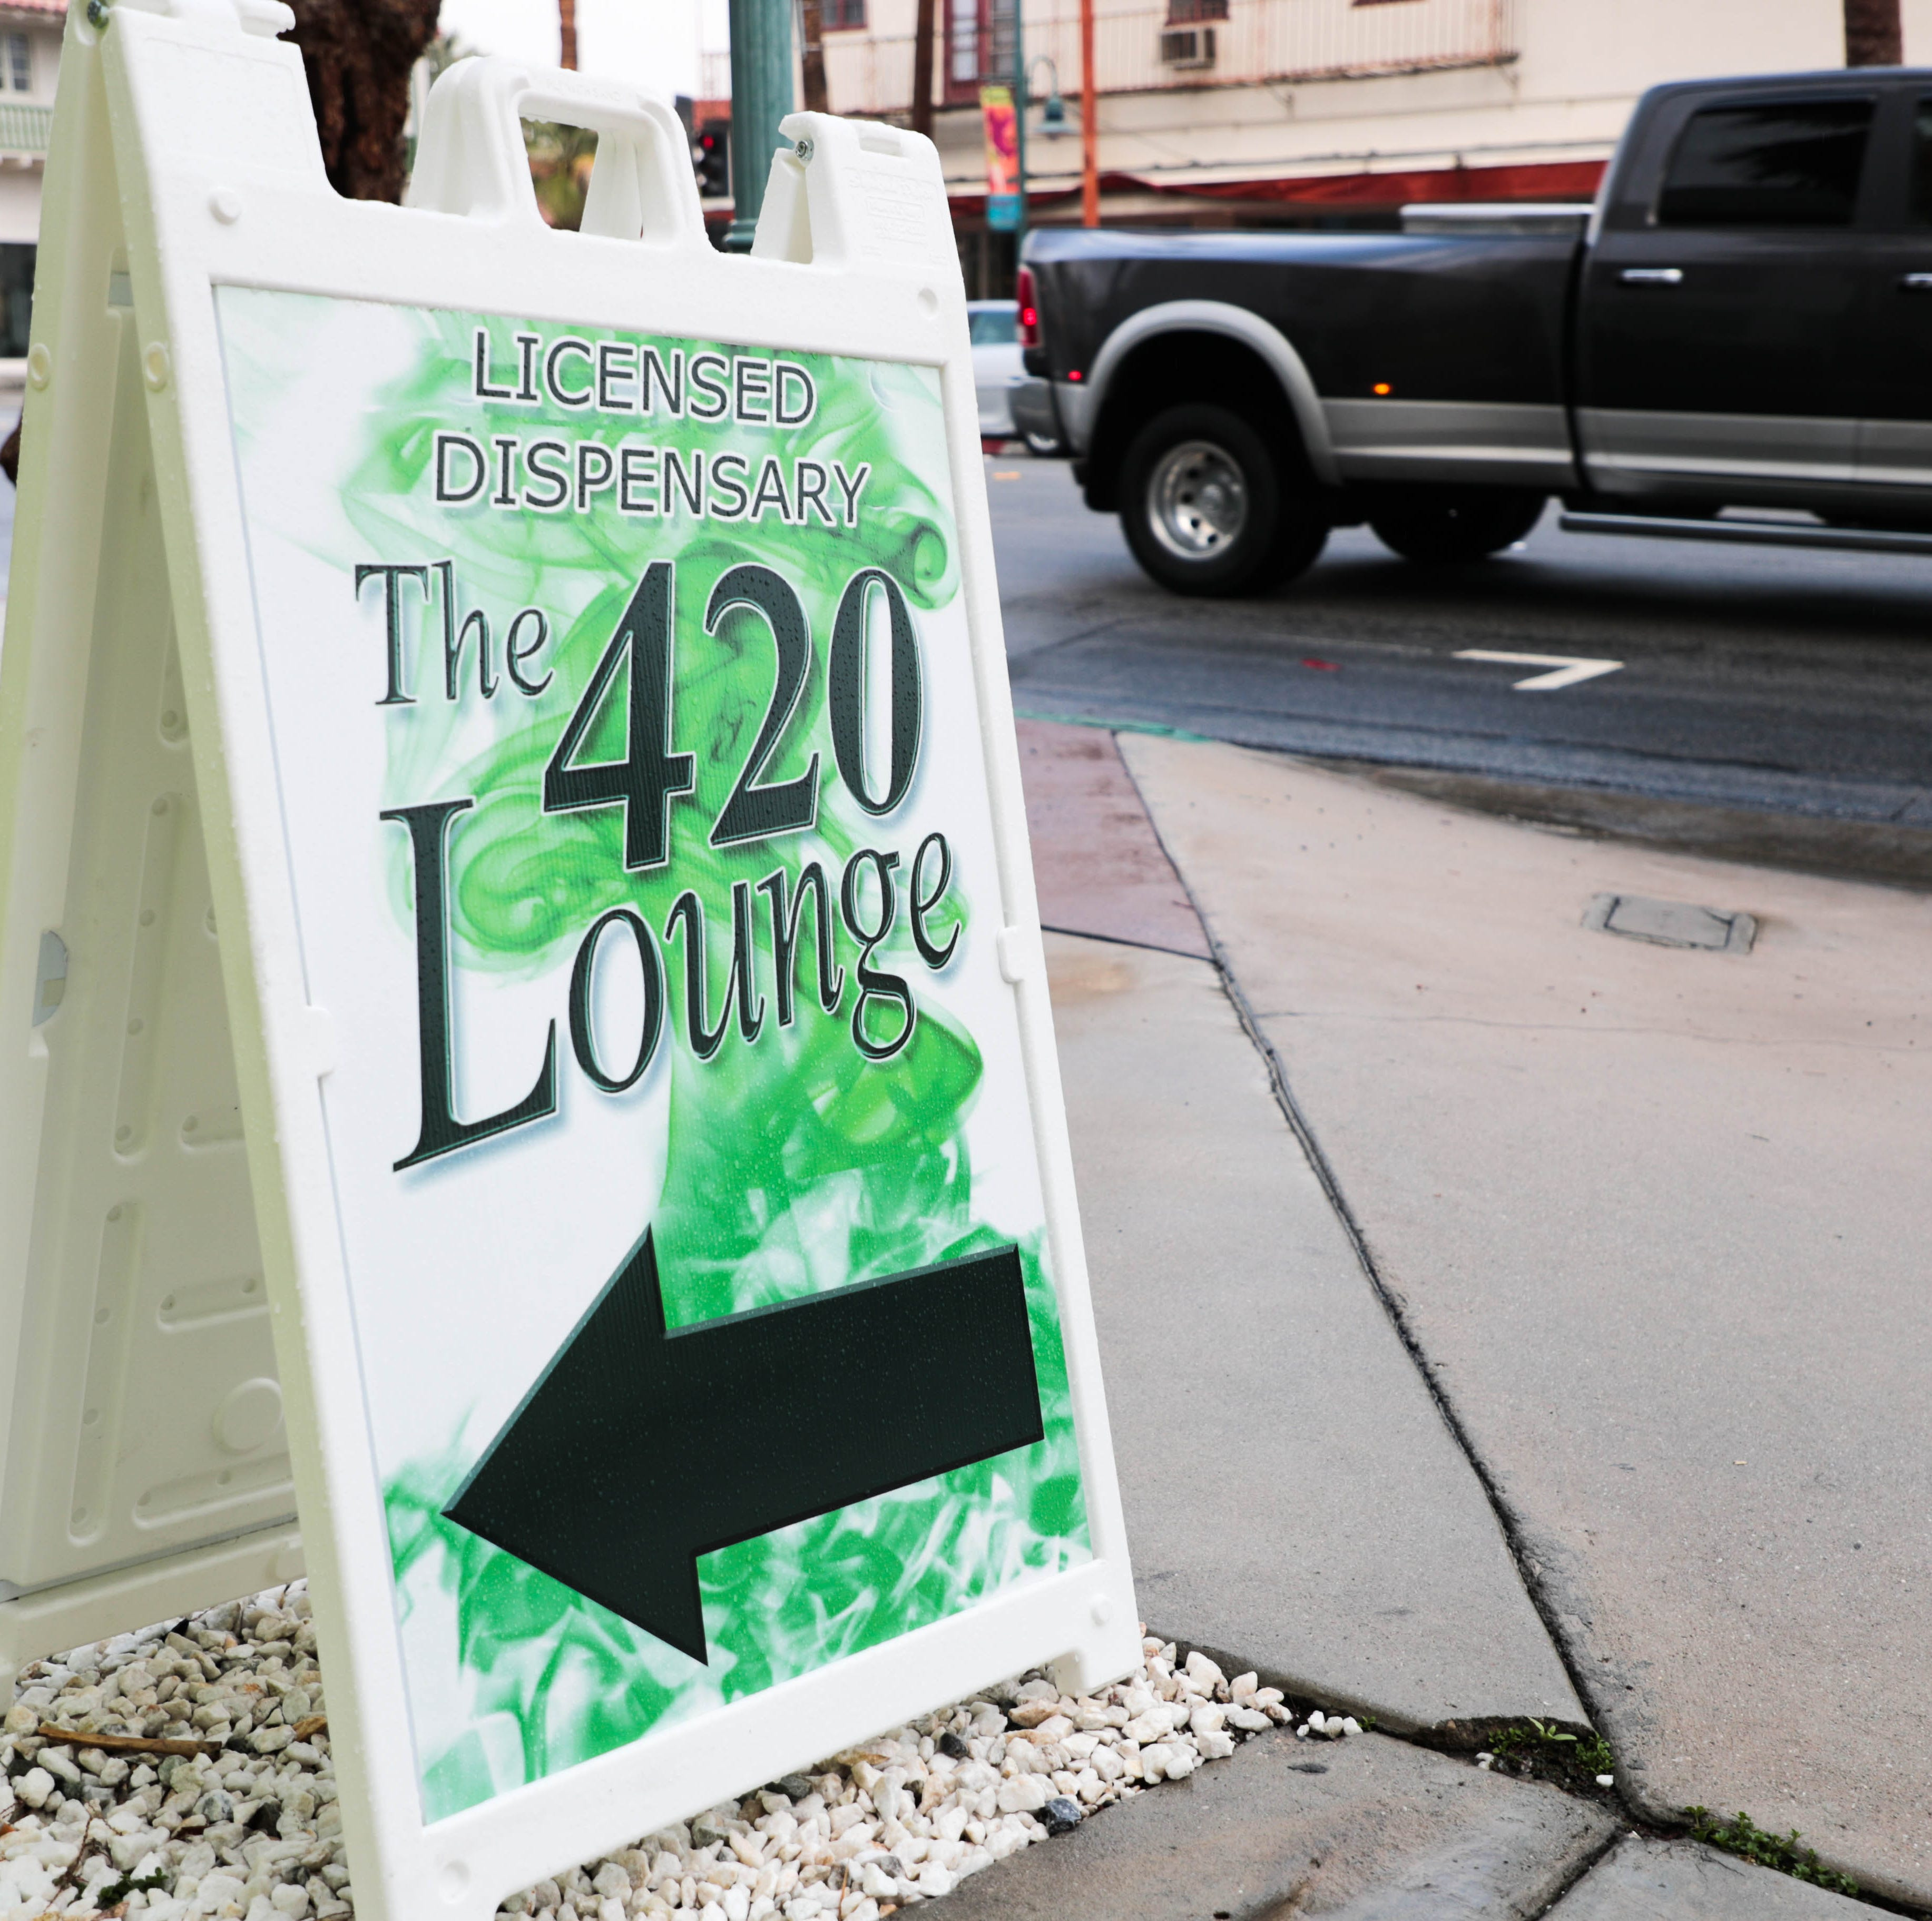 Weed lounge to open in former bank building in downtown Palm Springs. Here's a peek at how it will look